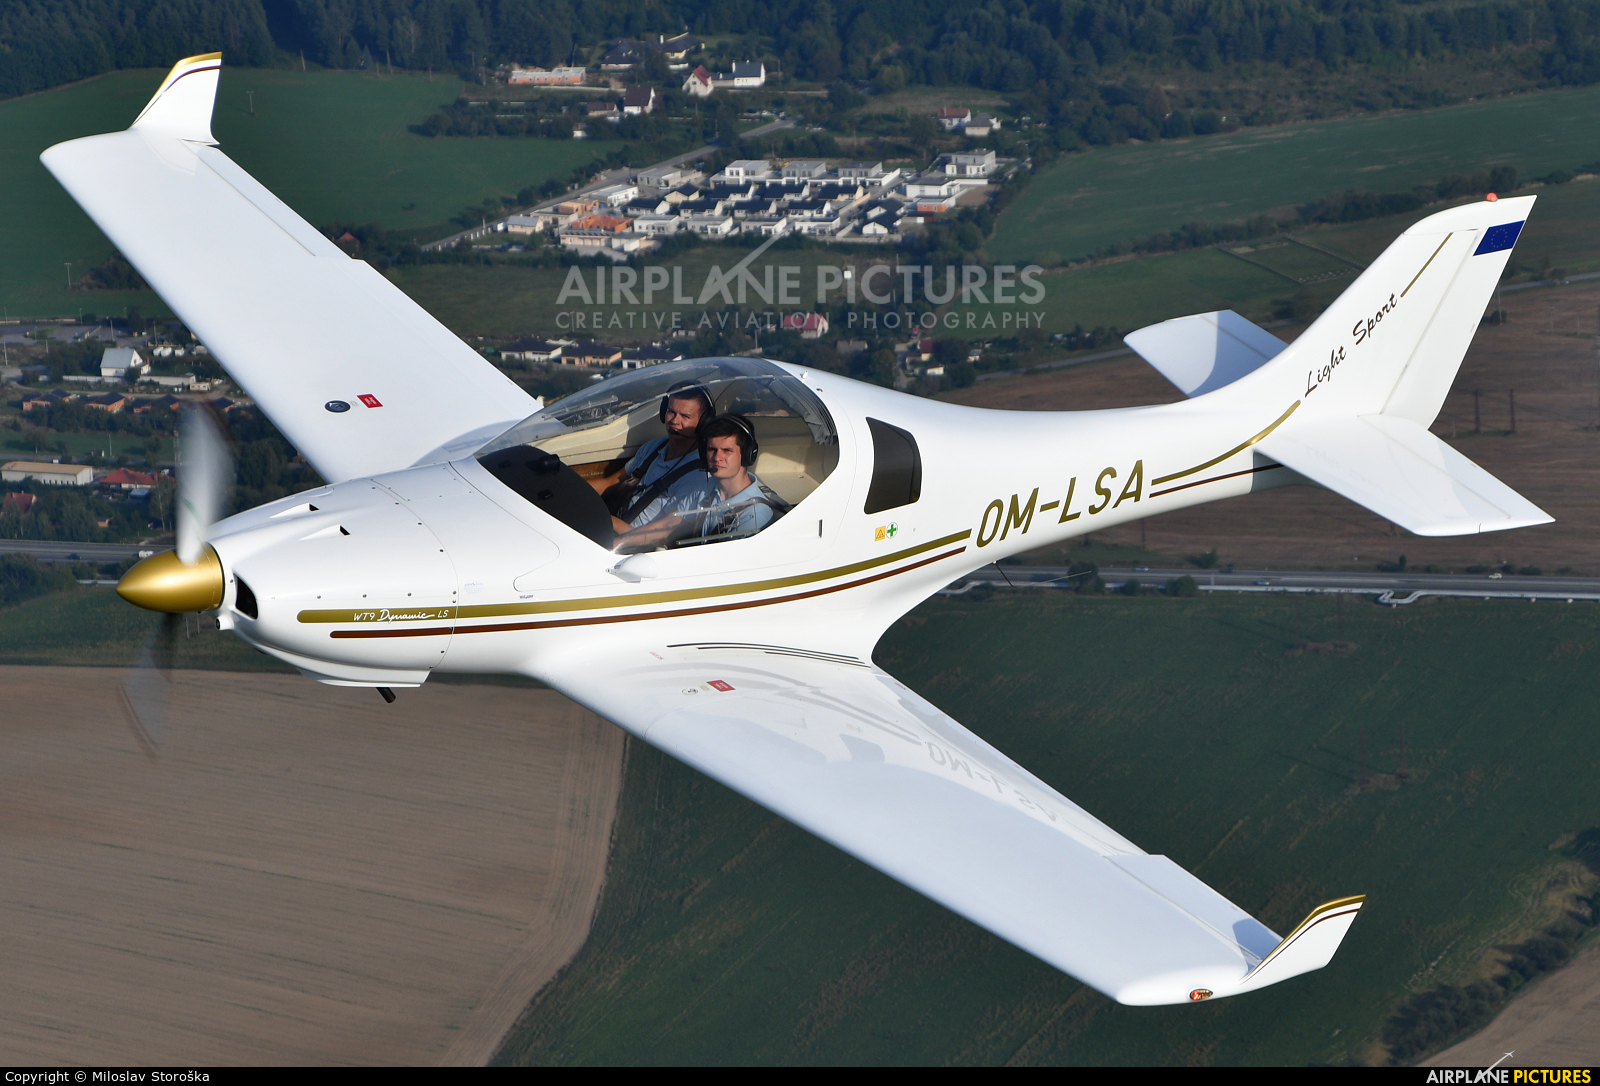 Aerospool OM-LSA aircraft at In Flight - Slovakia